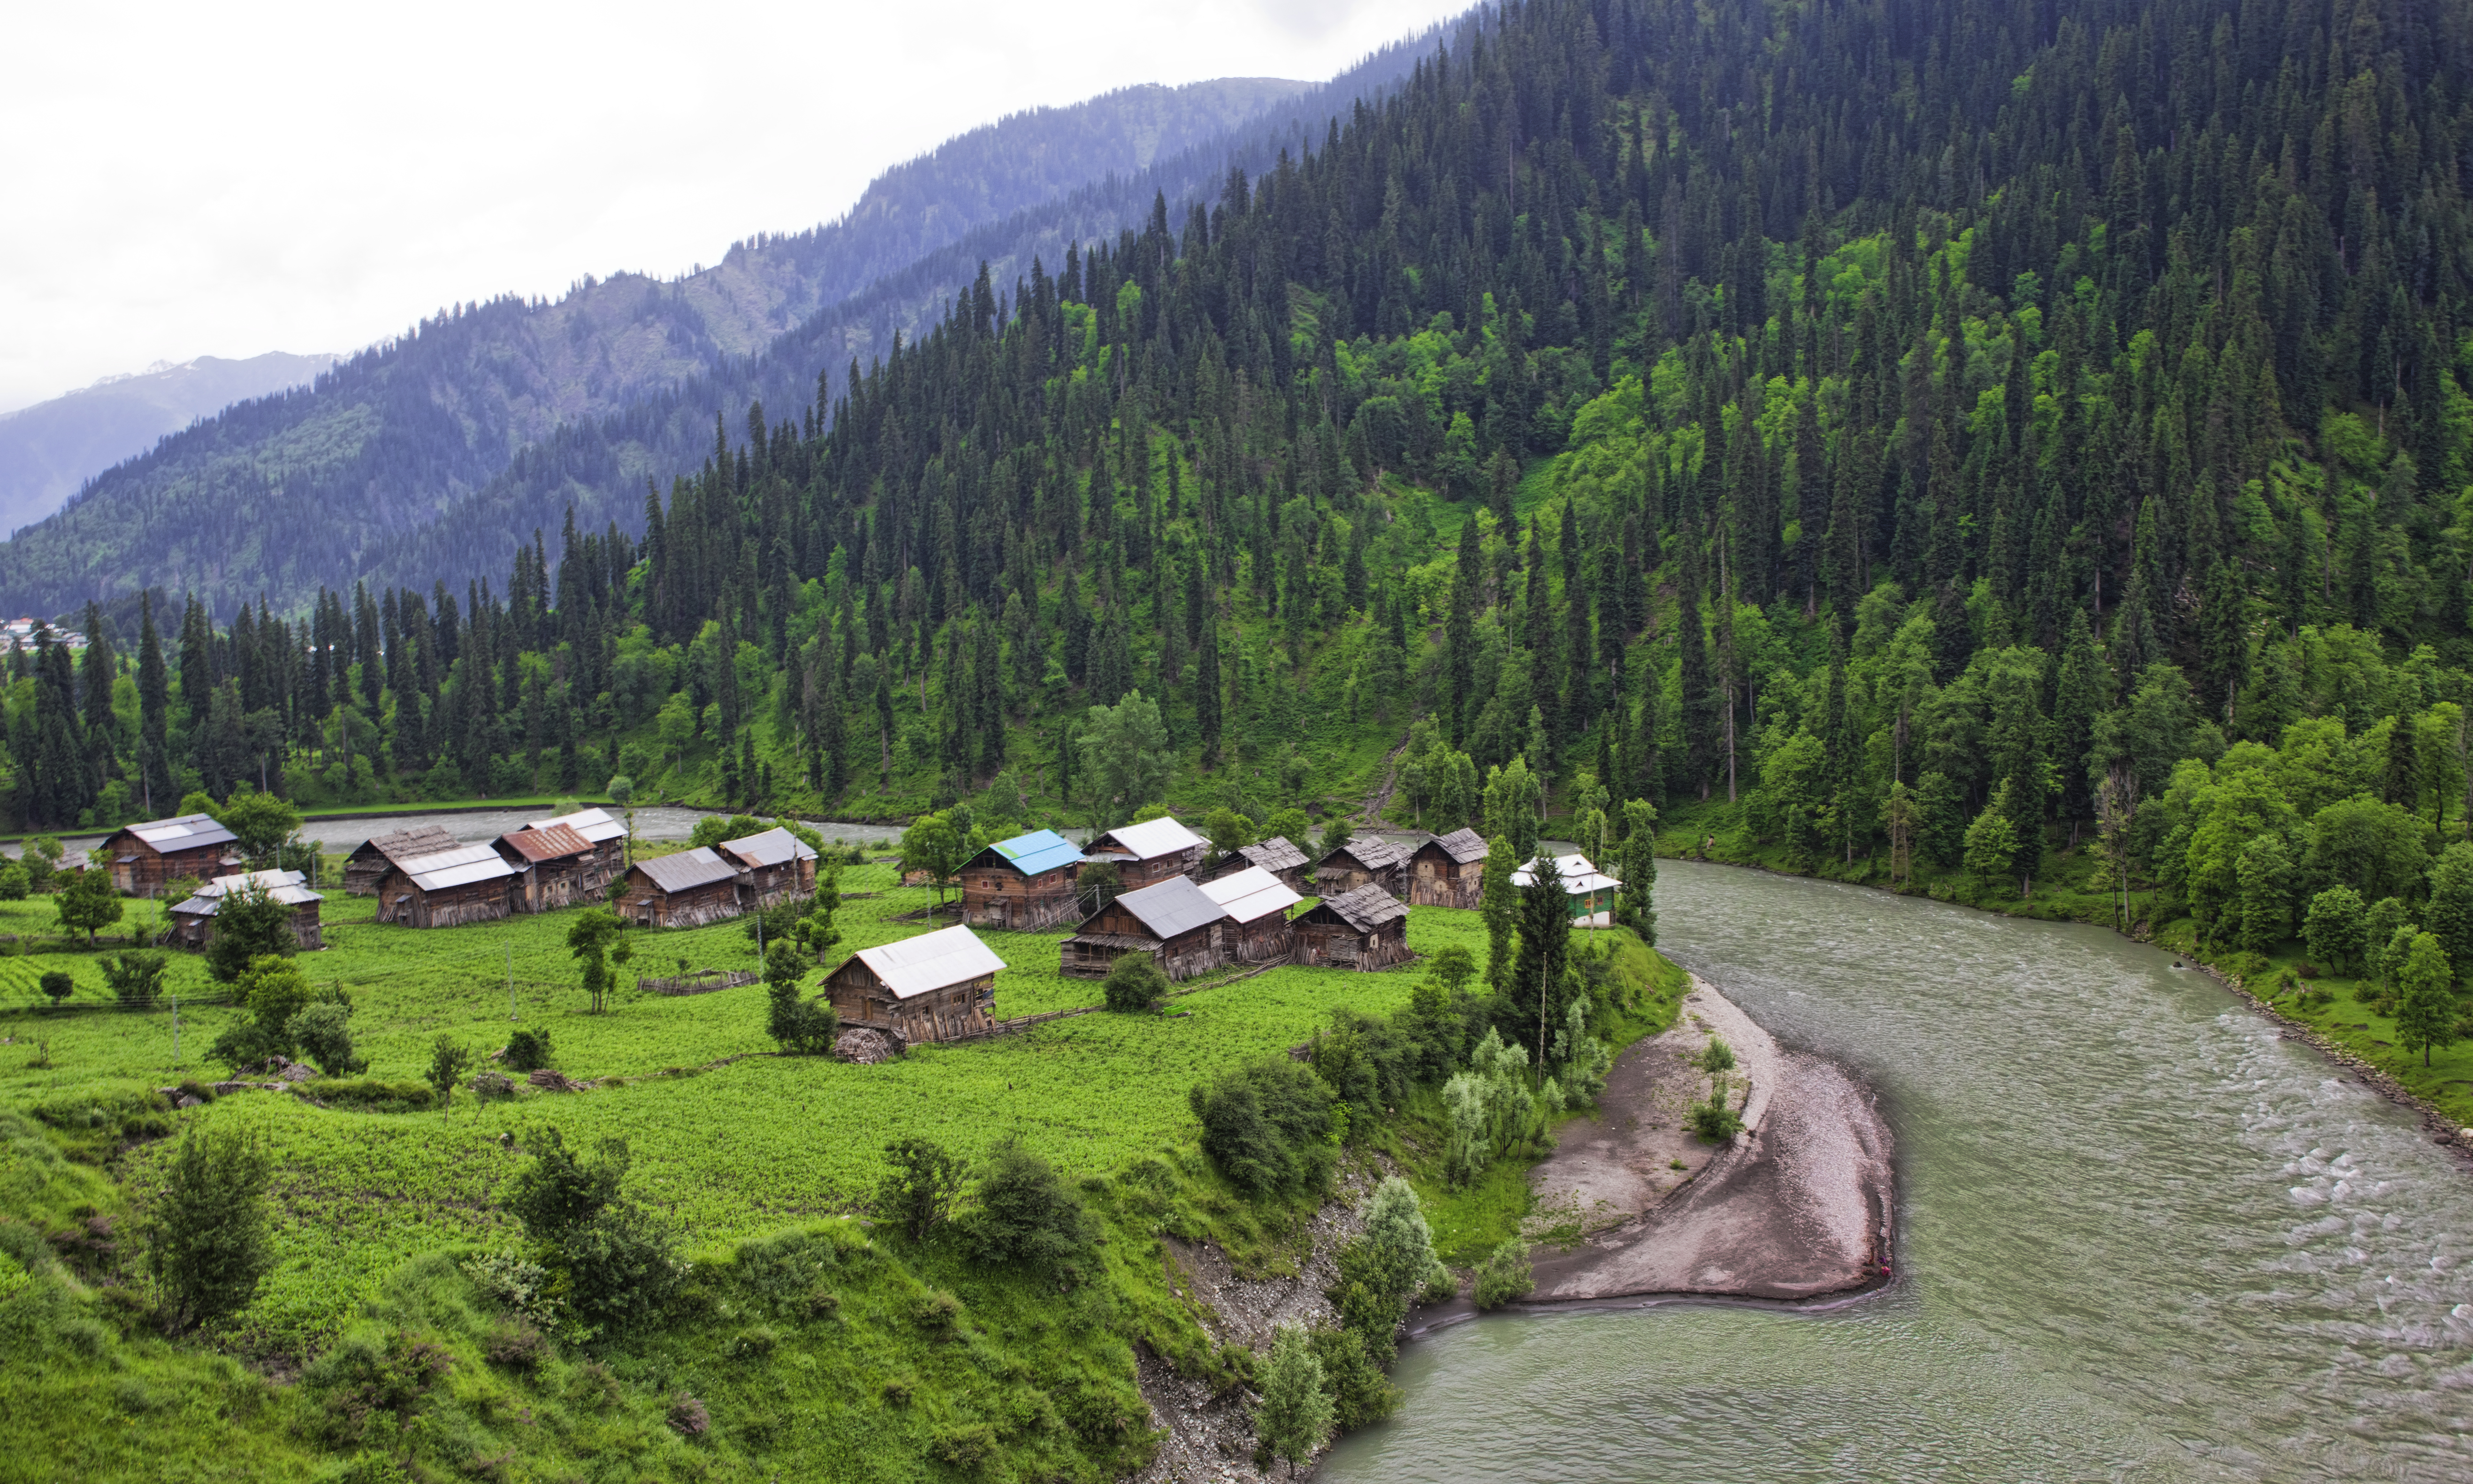 Mission: Traveling Unknown Lands 1 - Page 2 A_small_village_on_the_banks_of_Neelam_River_in_Grace_%28AKA_as_Grase%29_valley%2C